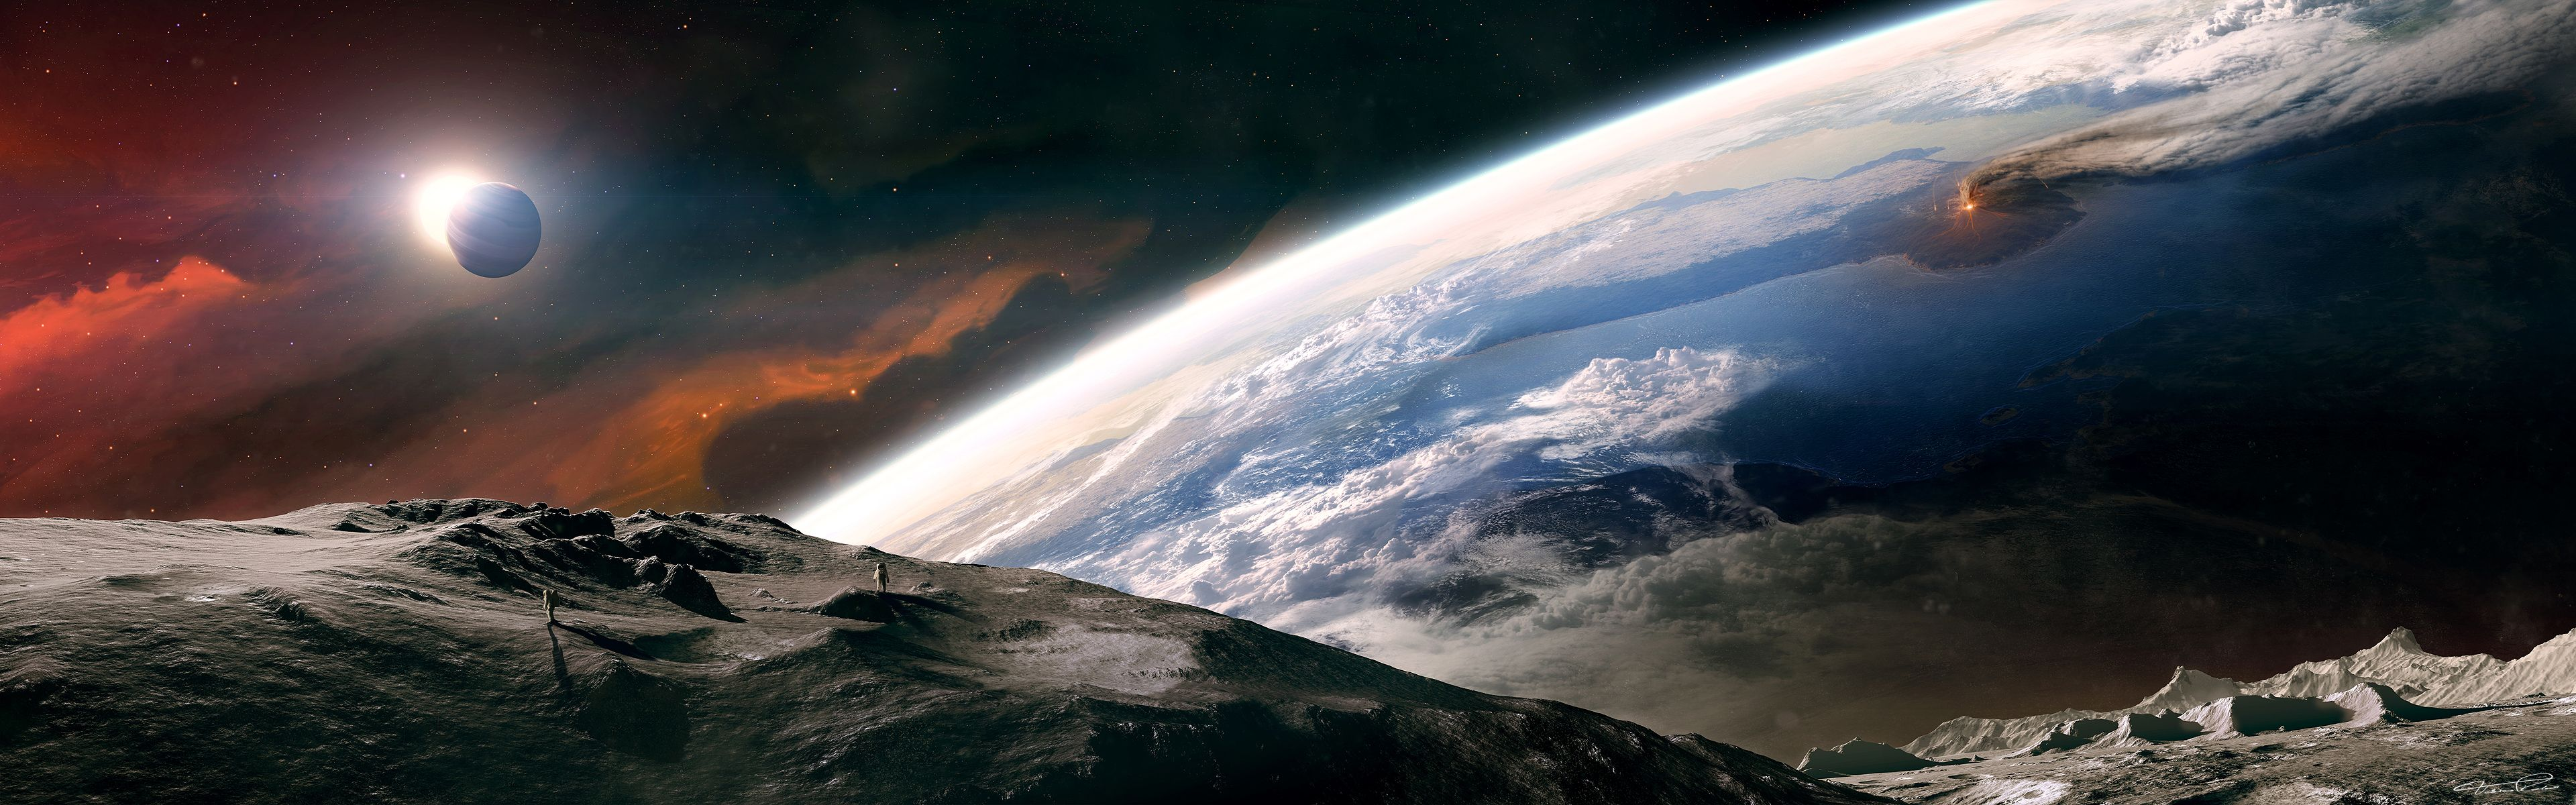 3d space scene dual screen wallpaper 157366 resolution - Space wallpaper 3840x1200 ...